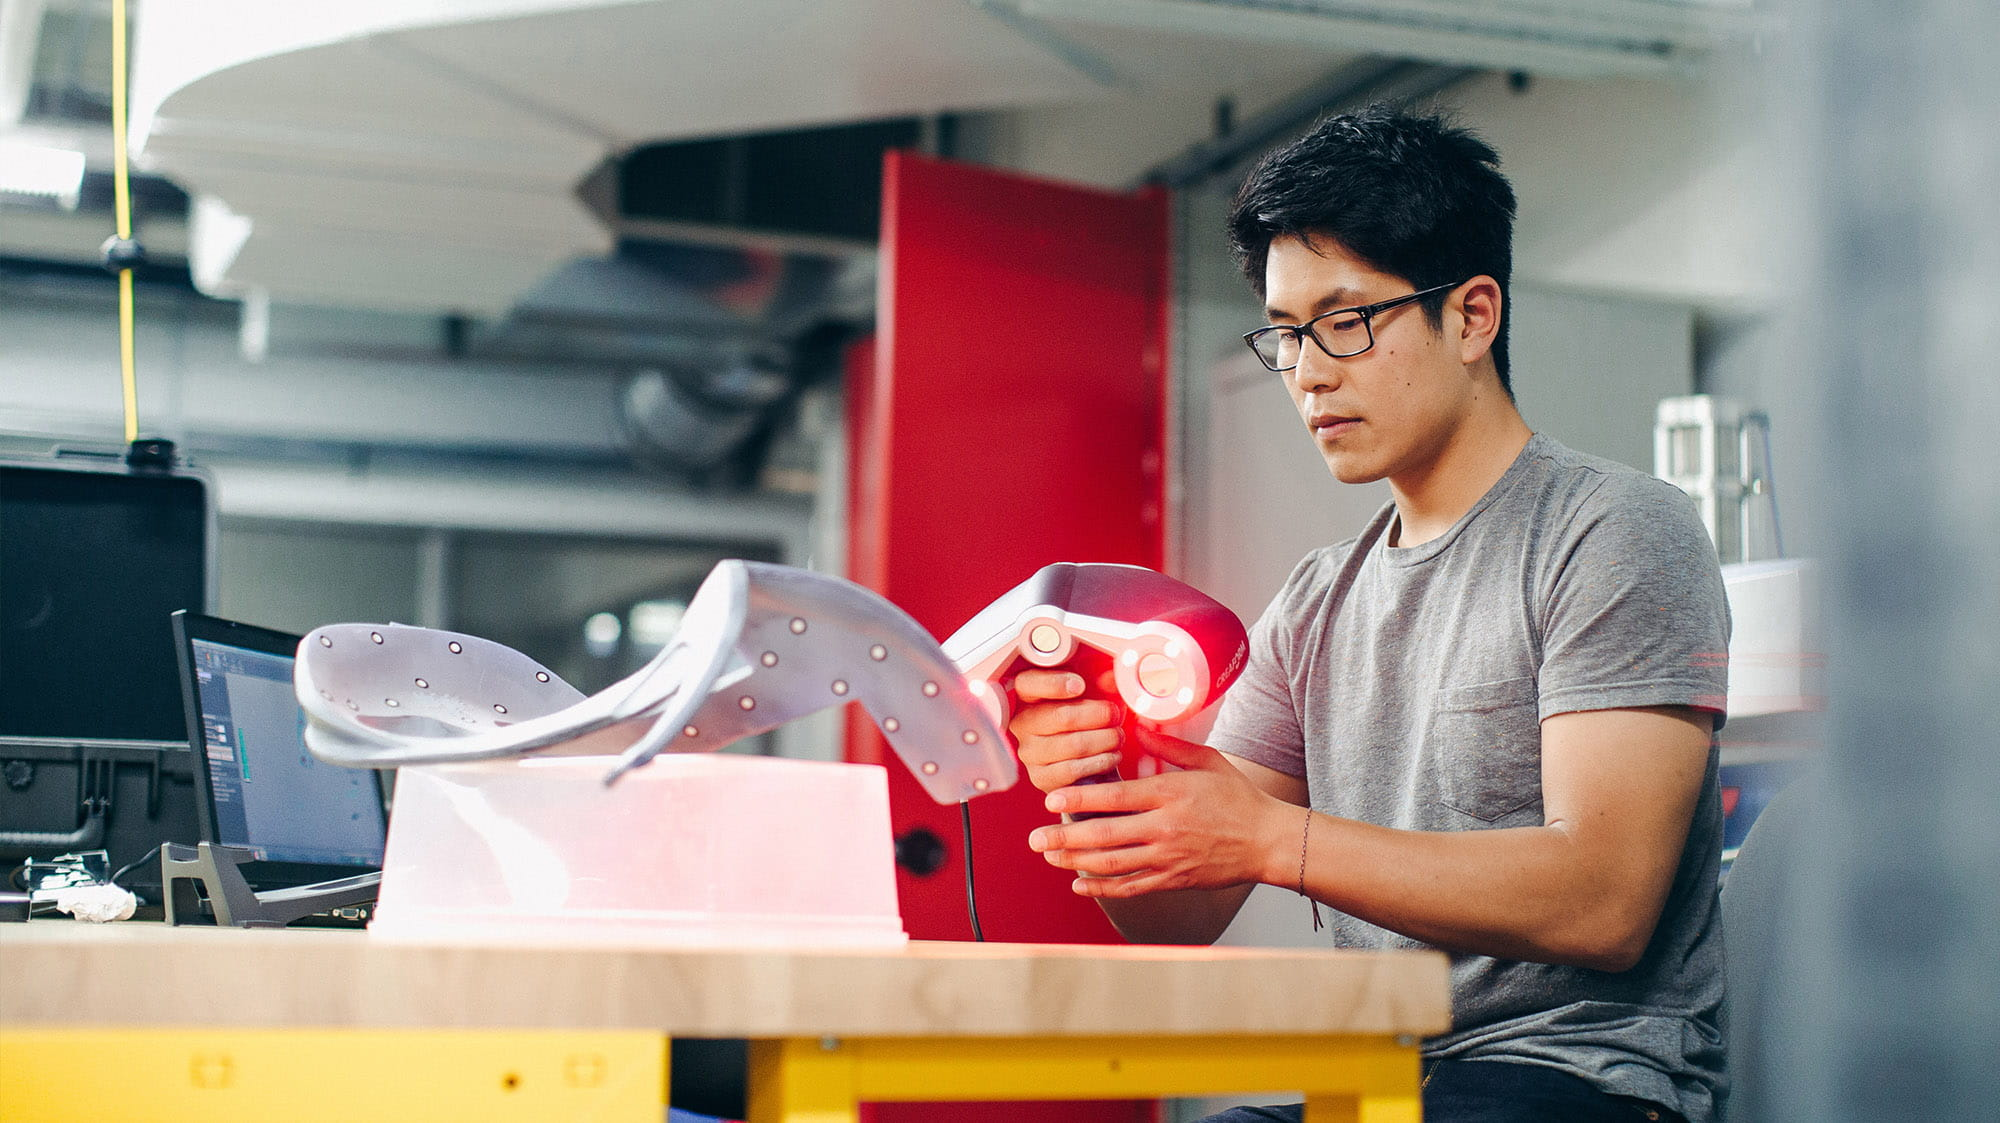 A Sheridan engineering student working with lab equipment